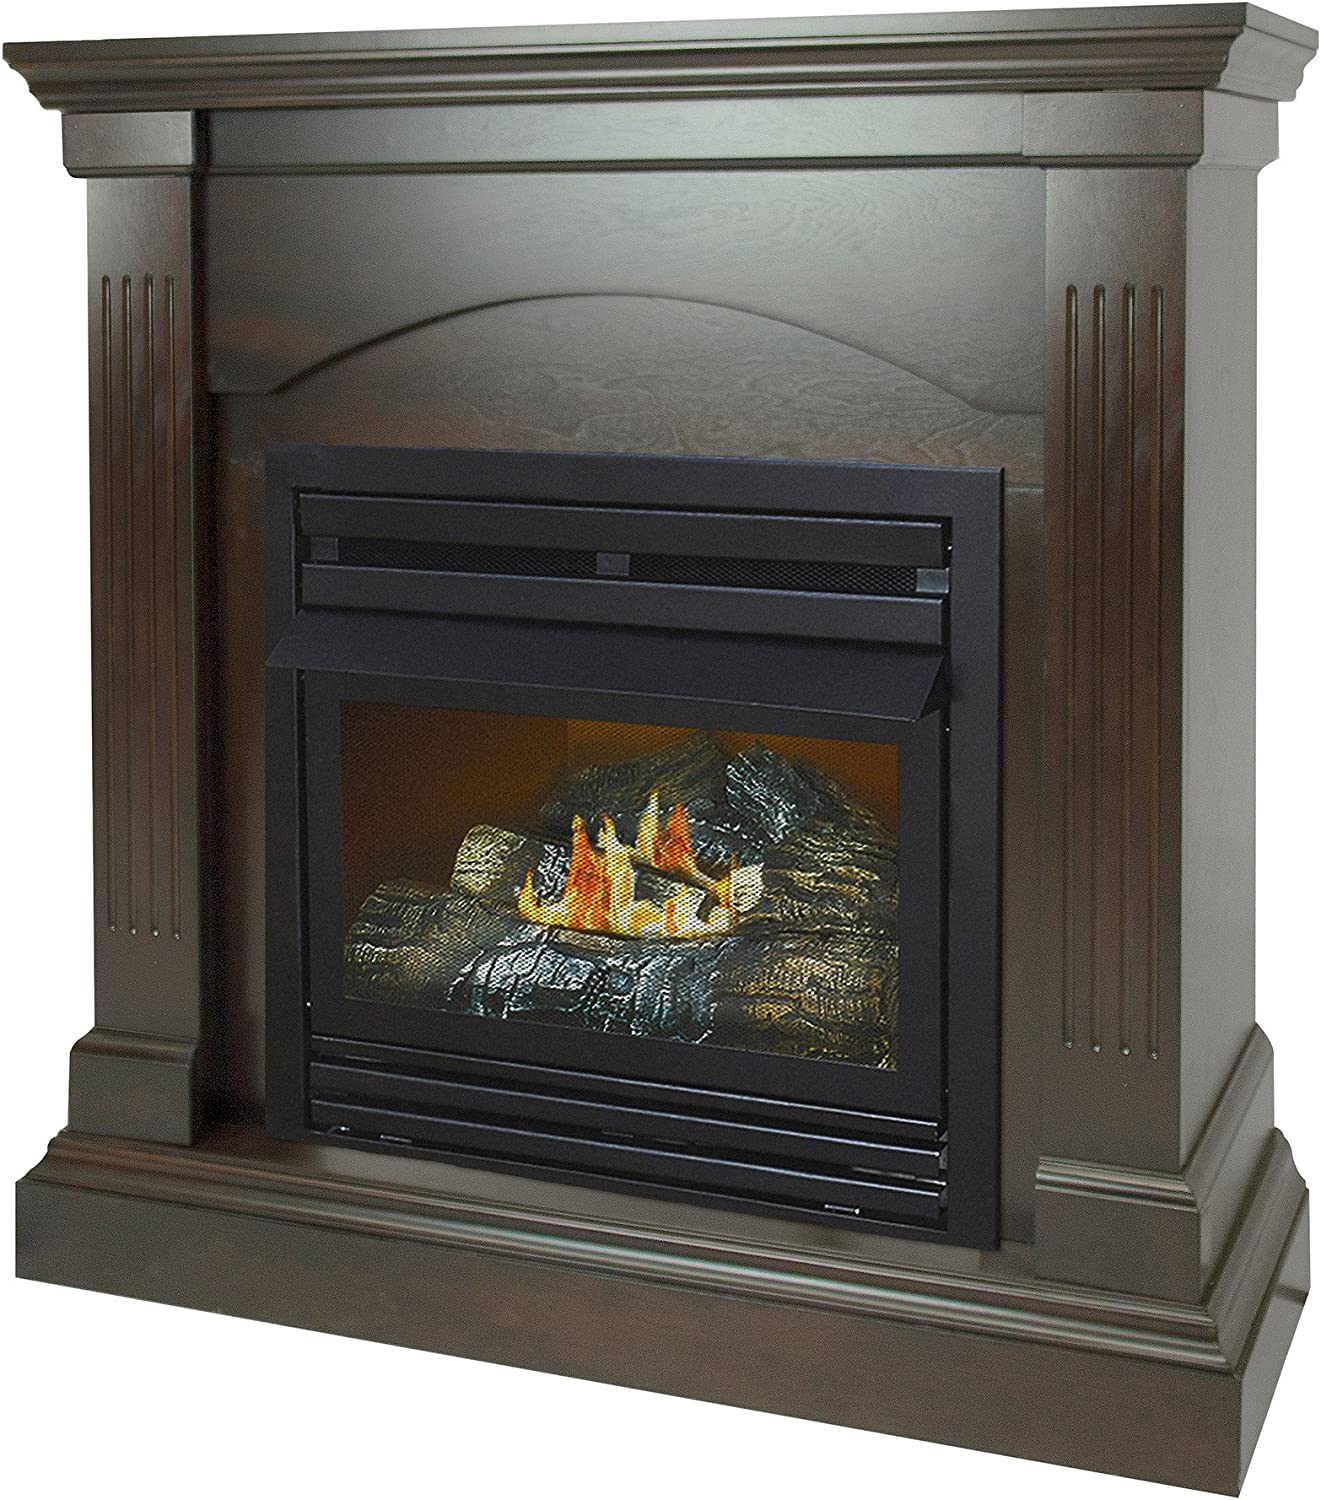 Disadvantages Of Ventless Gas Fireplace